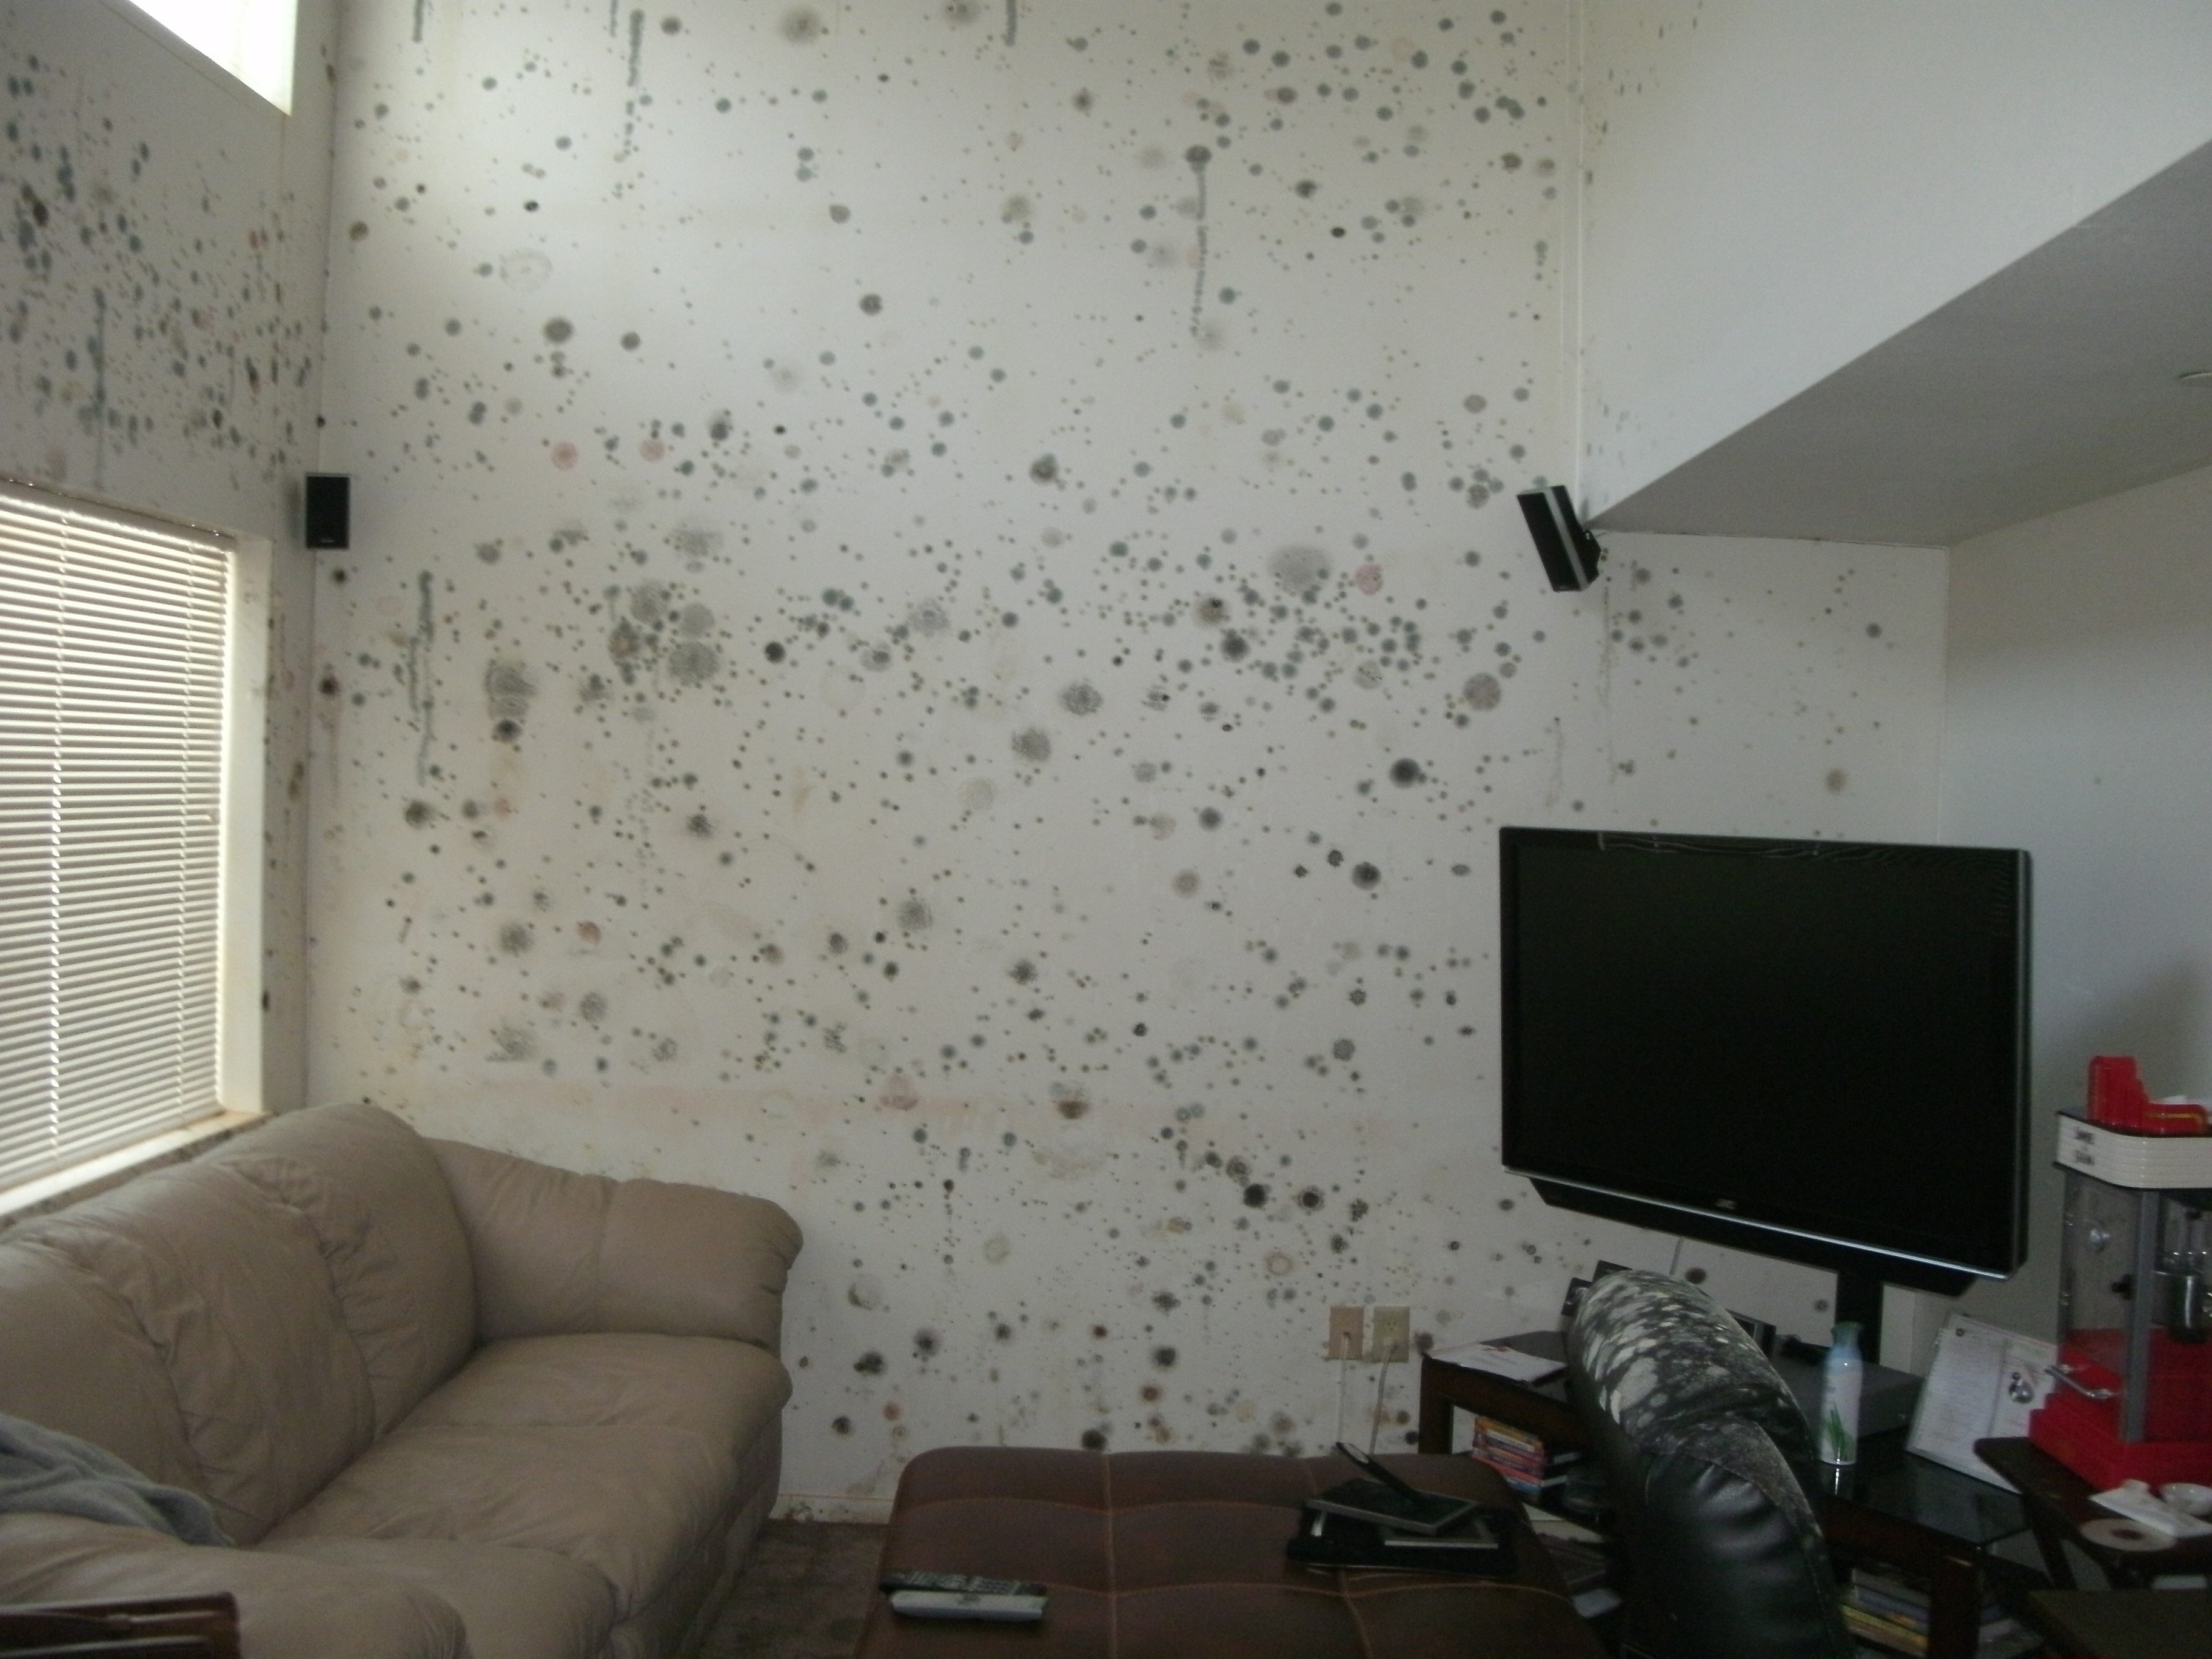 Preventing mold aurora military housing - What to do about mold in house ...